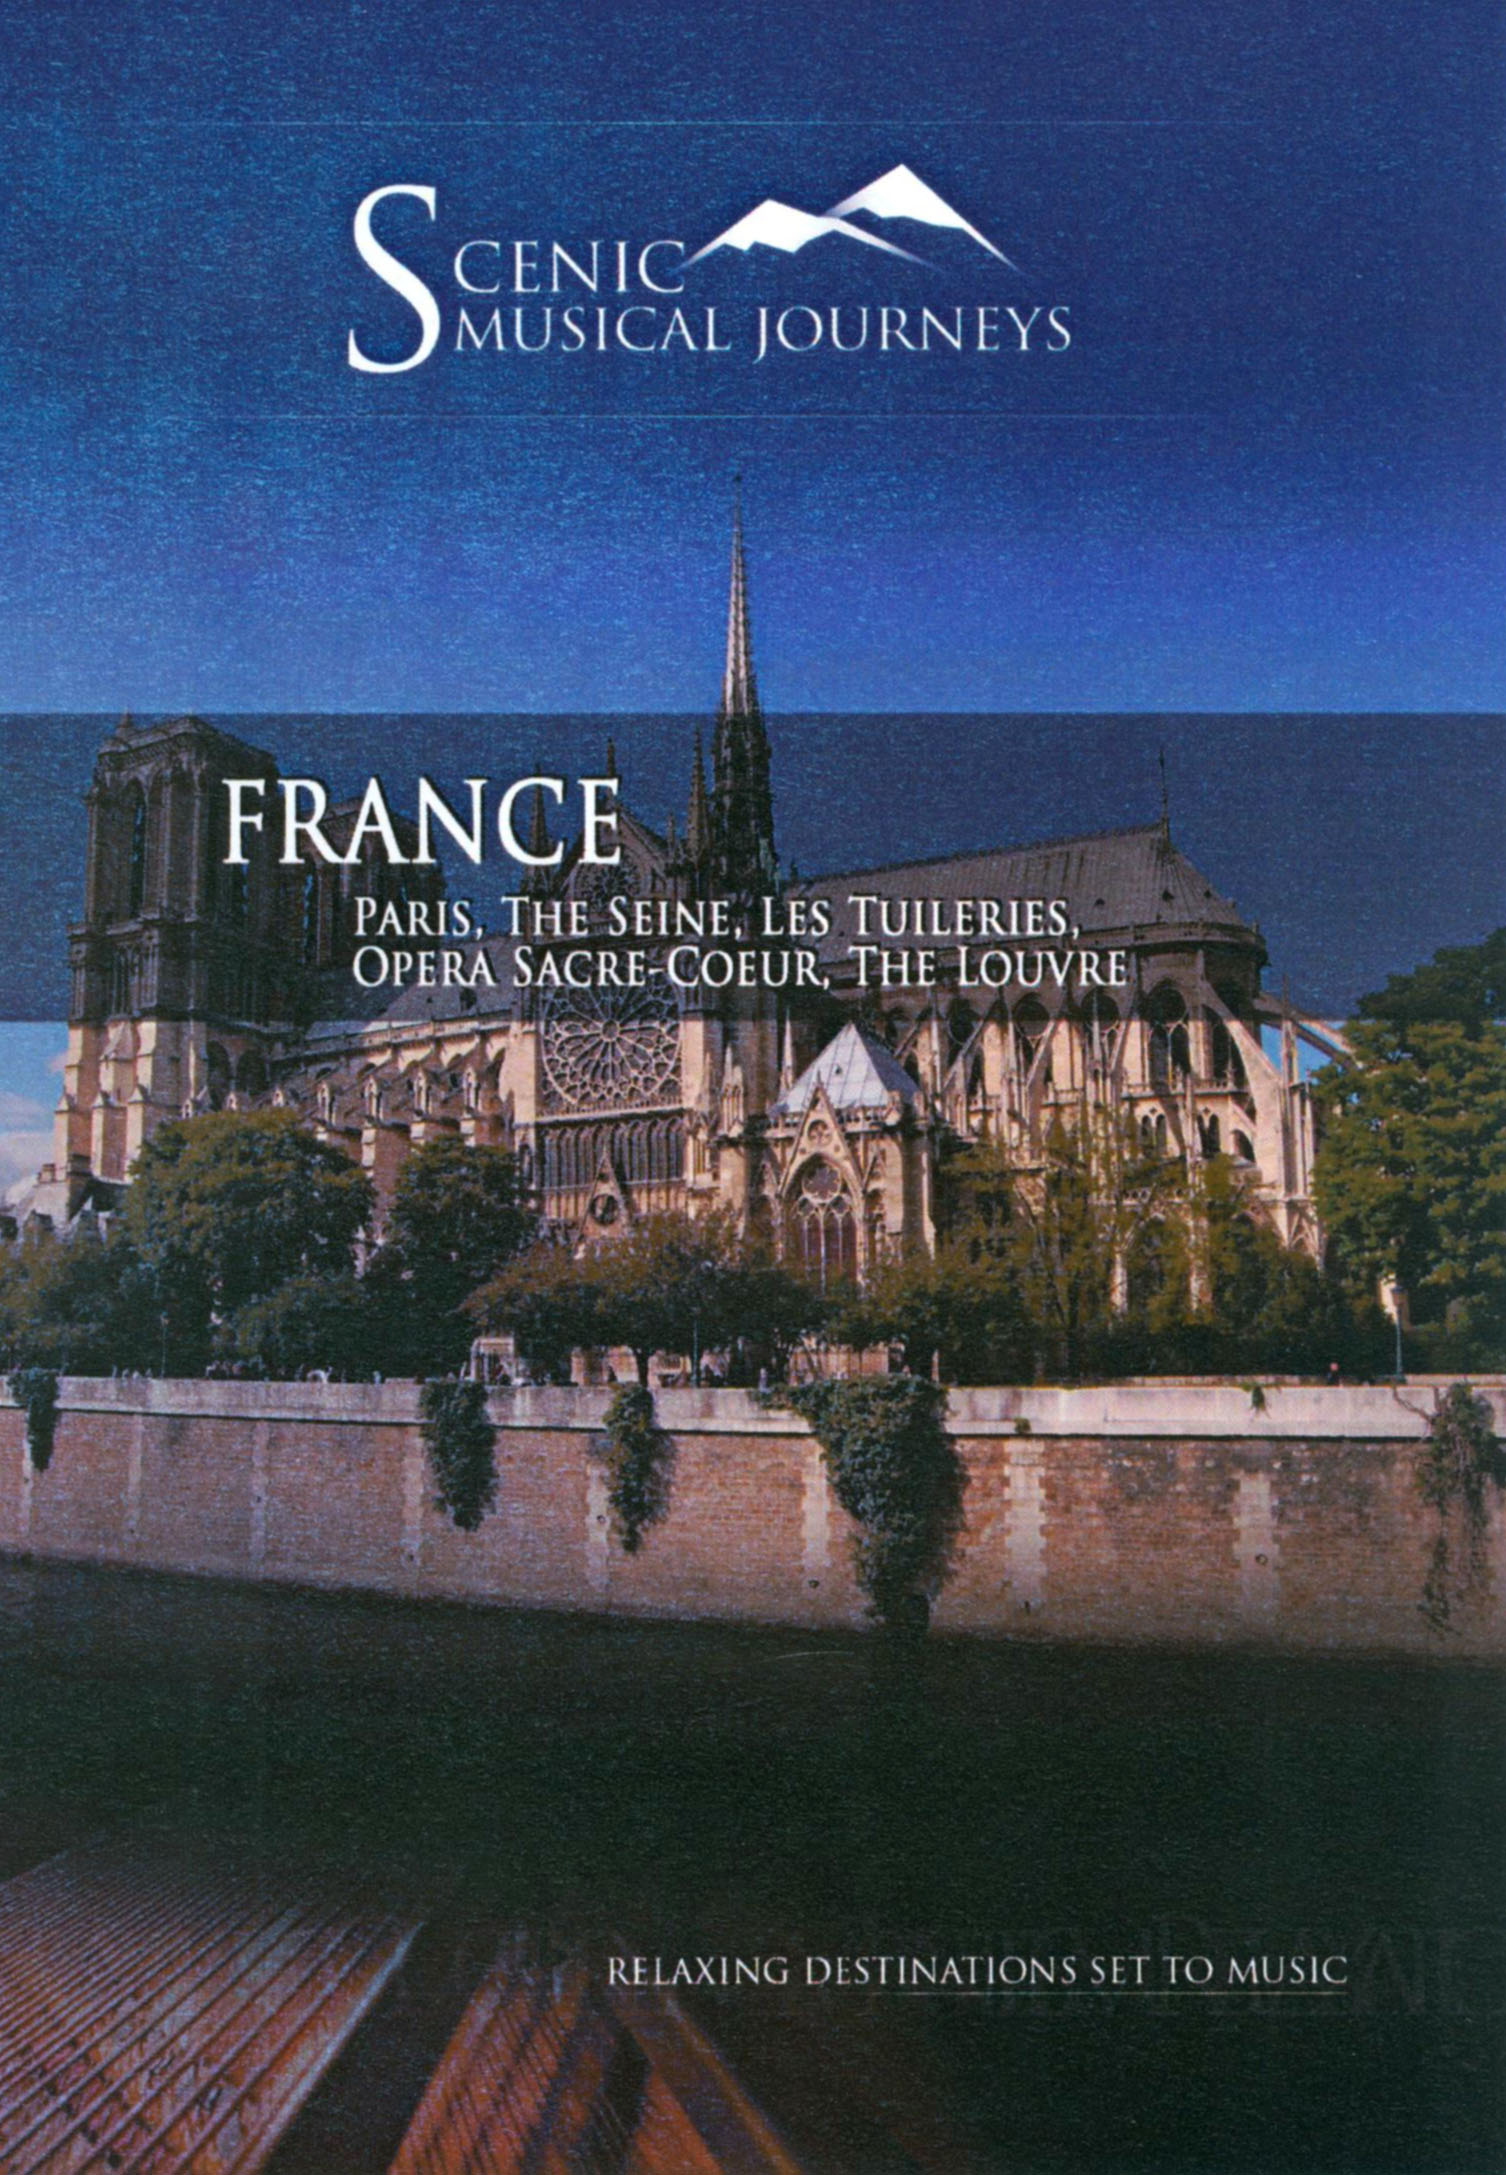 Scenic Musical Journeys: France - Paris, The Seine, Les Tuileries, Opera Sacre-Coeur, The Louvre